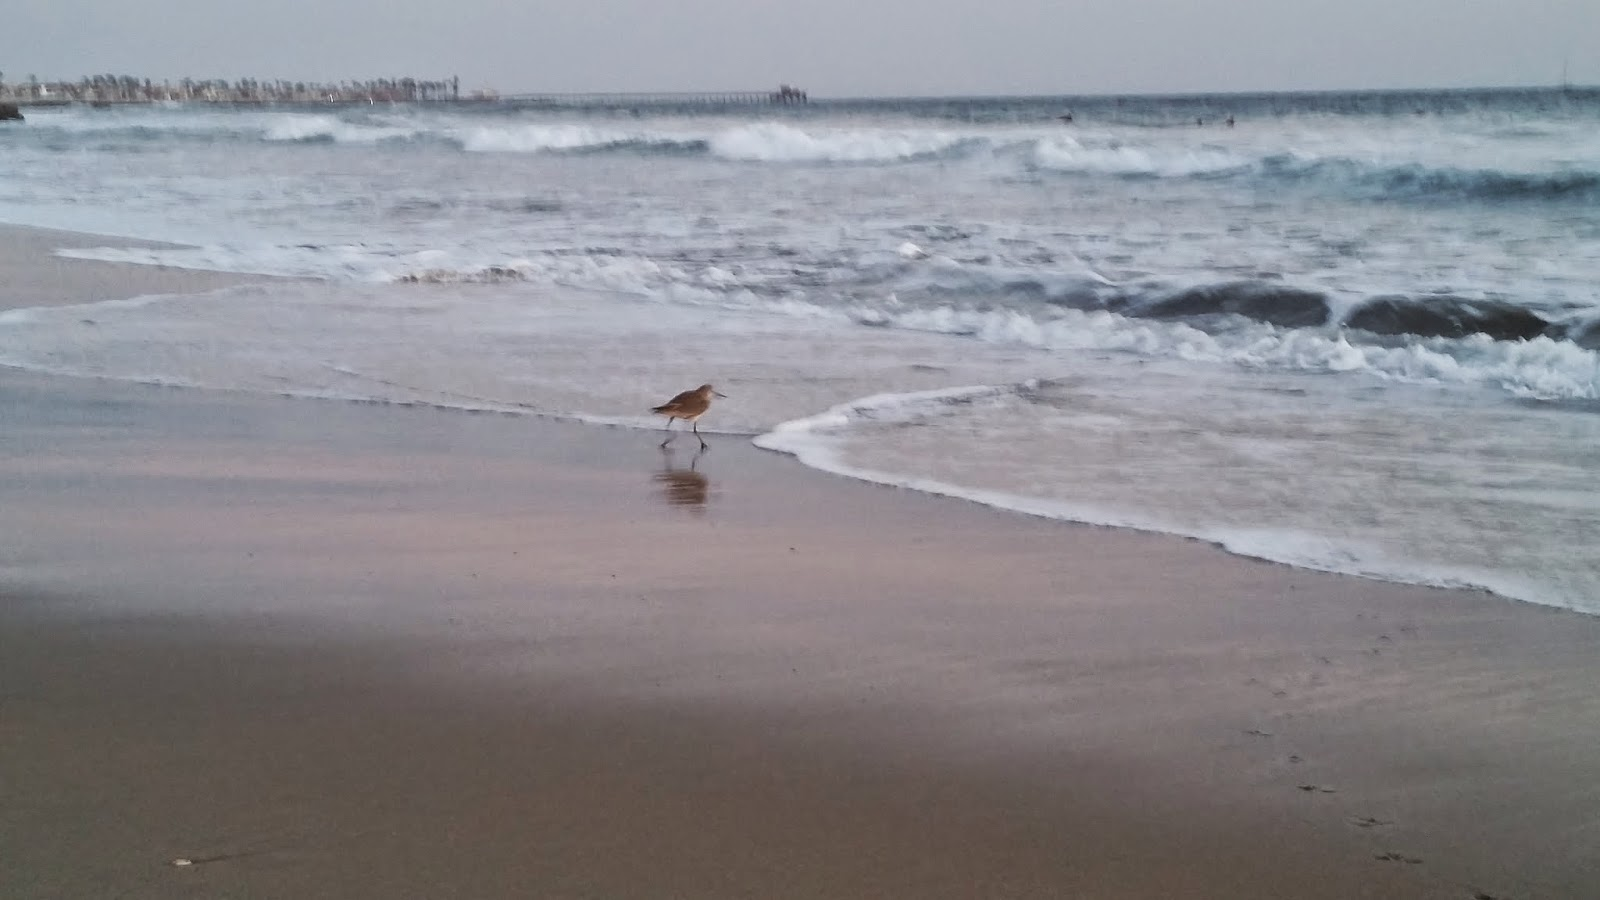 bird at Newport Beach, California